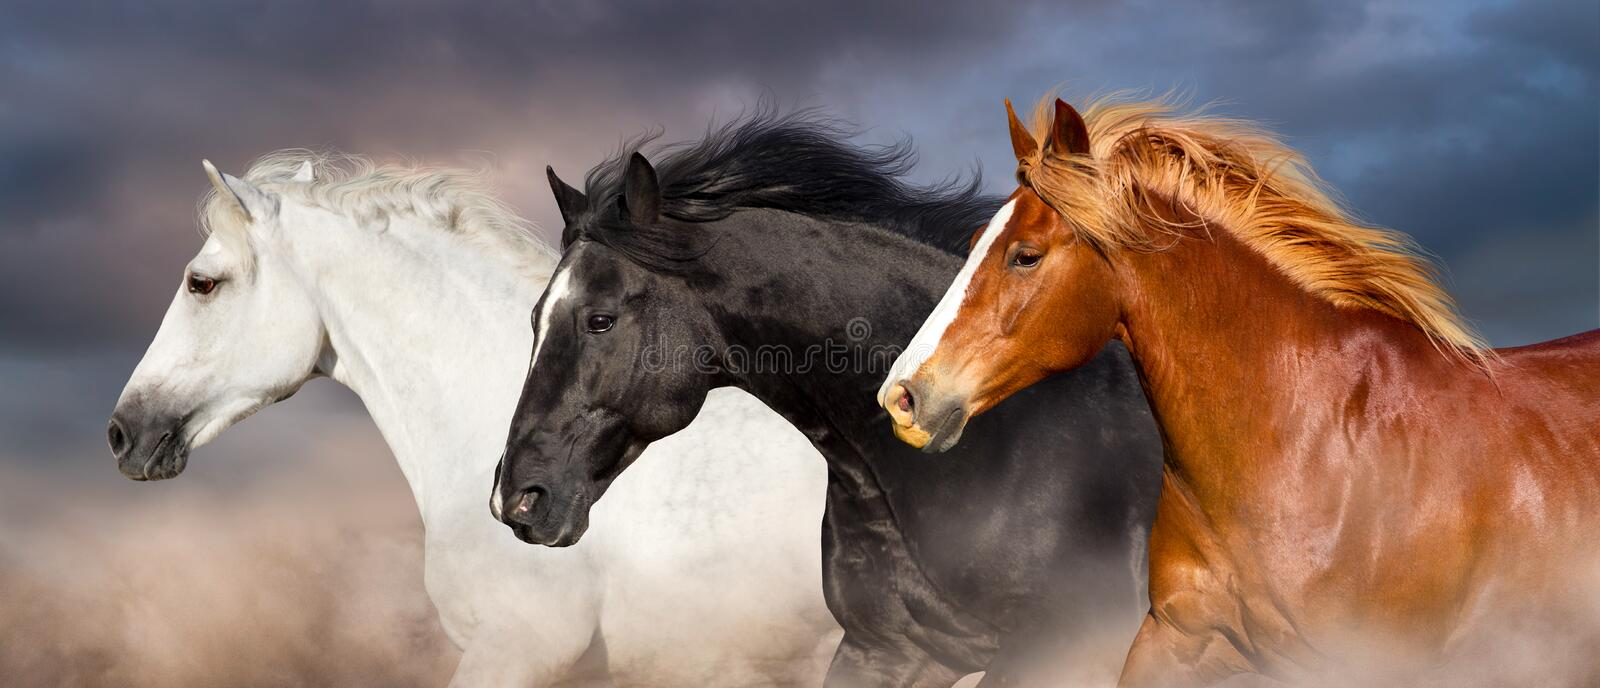 Horse herd portrait royalty free stock photos